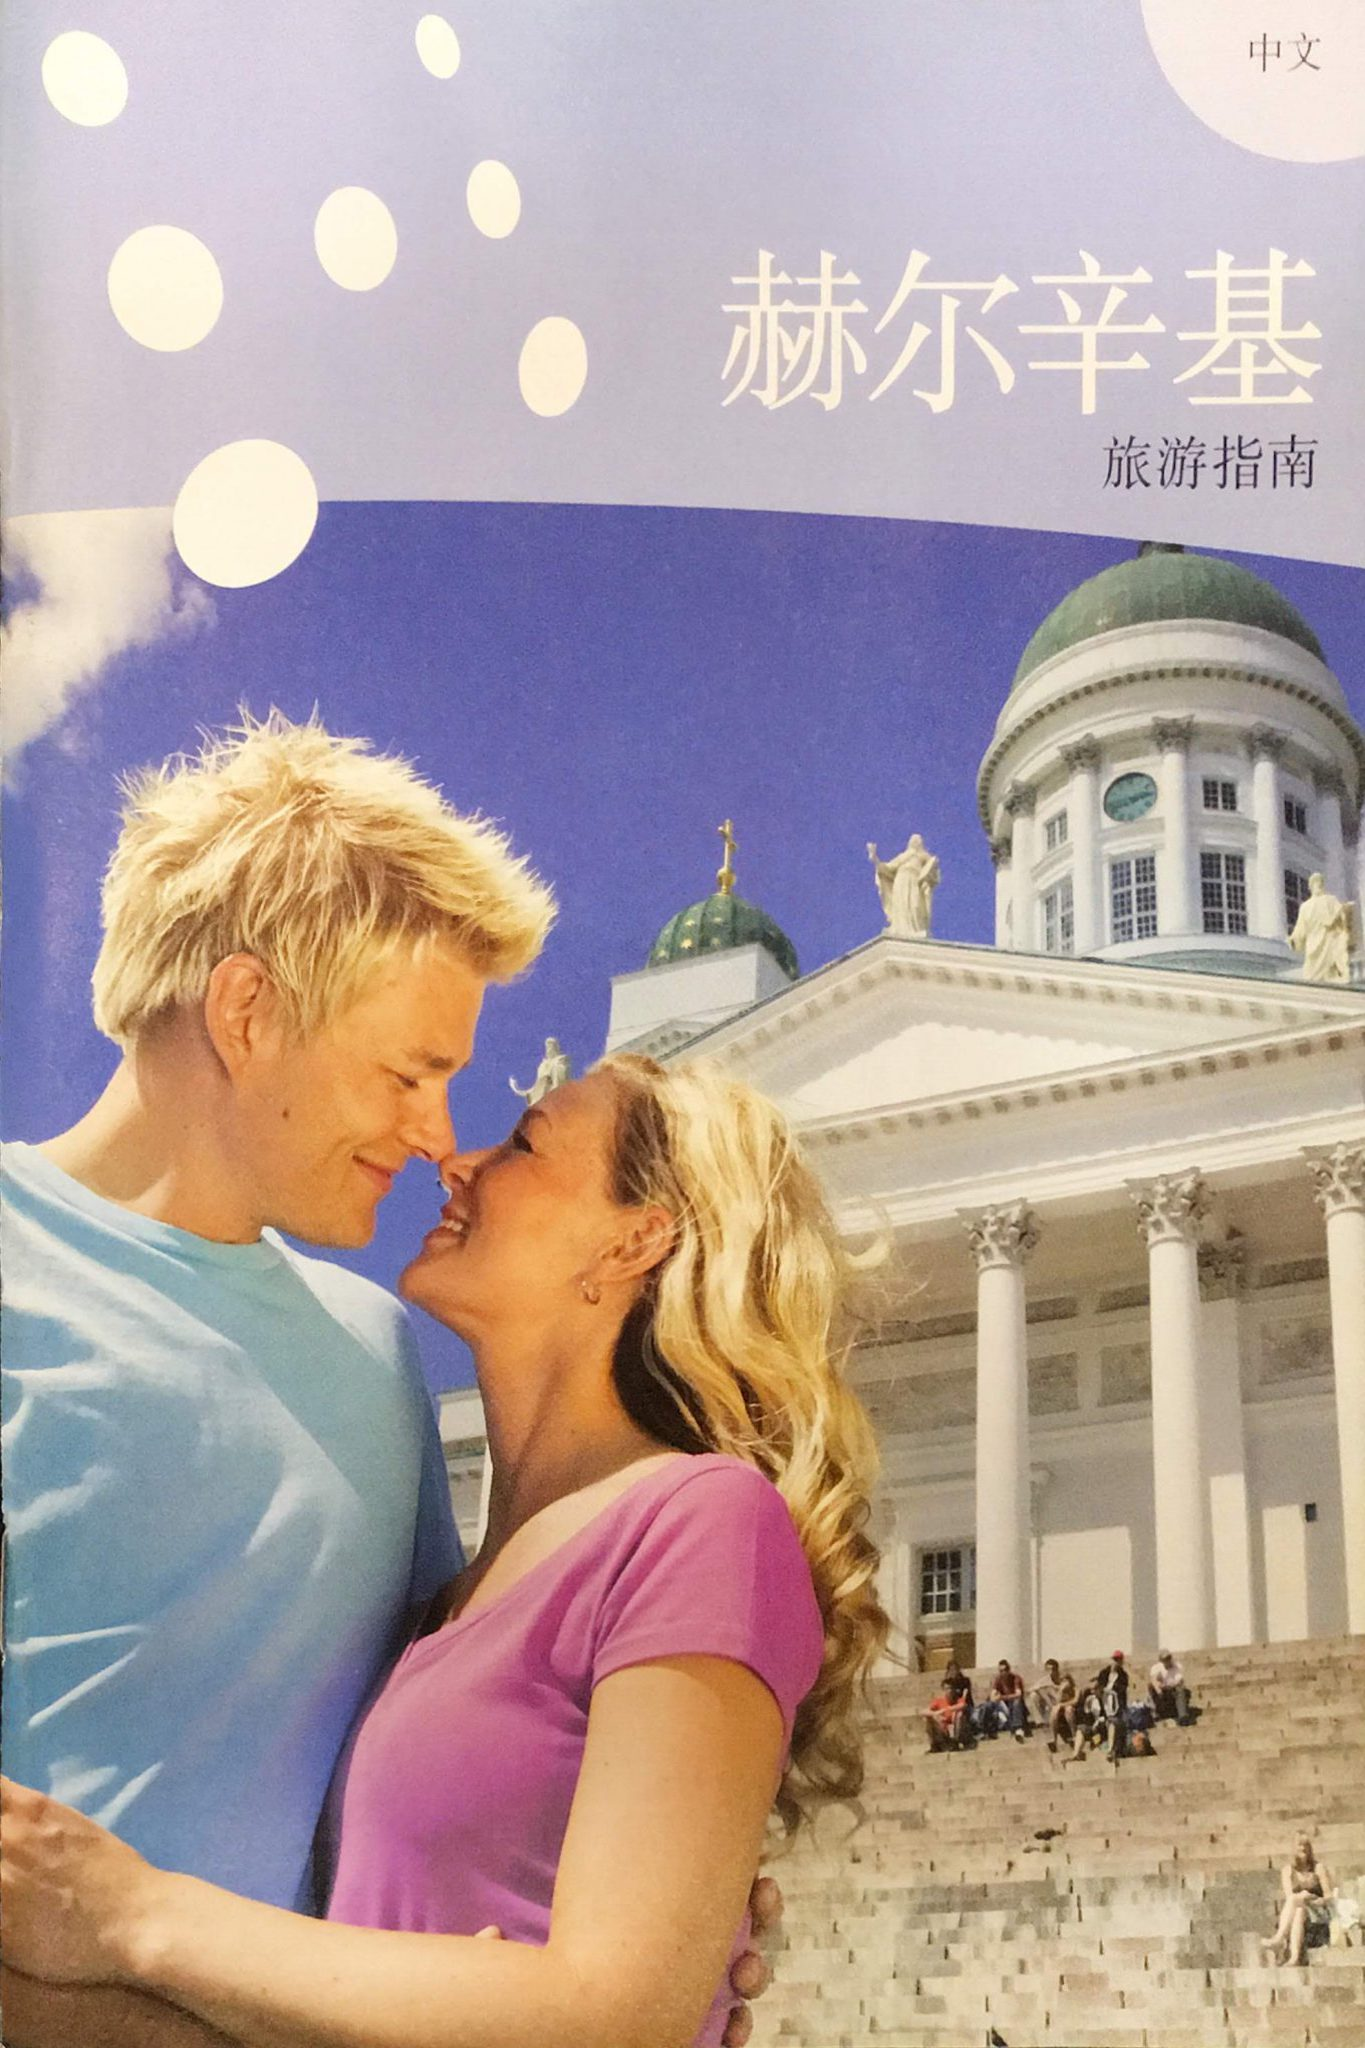 tekway-helsinki-city-travel-guide-7-e1585126794419-1360x2048